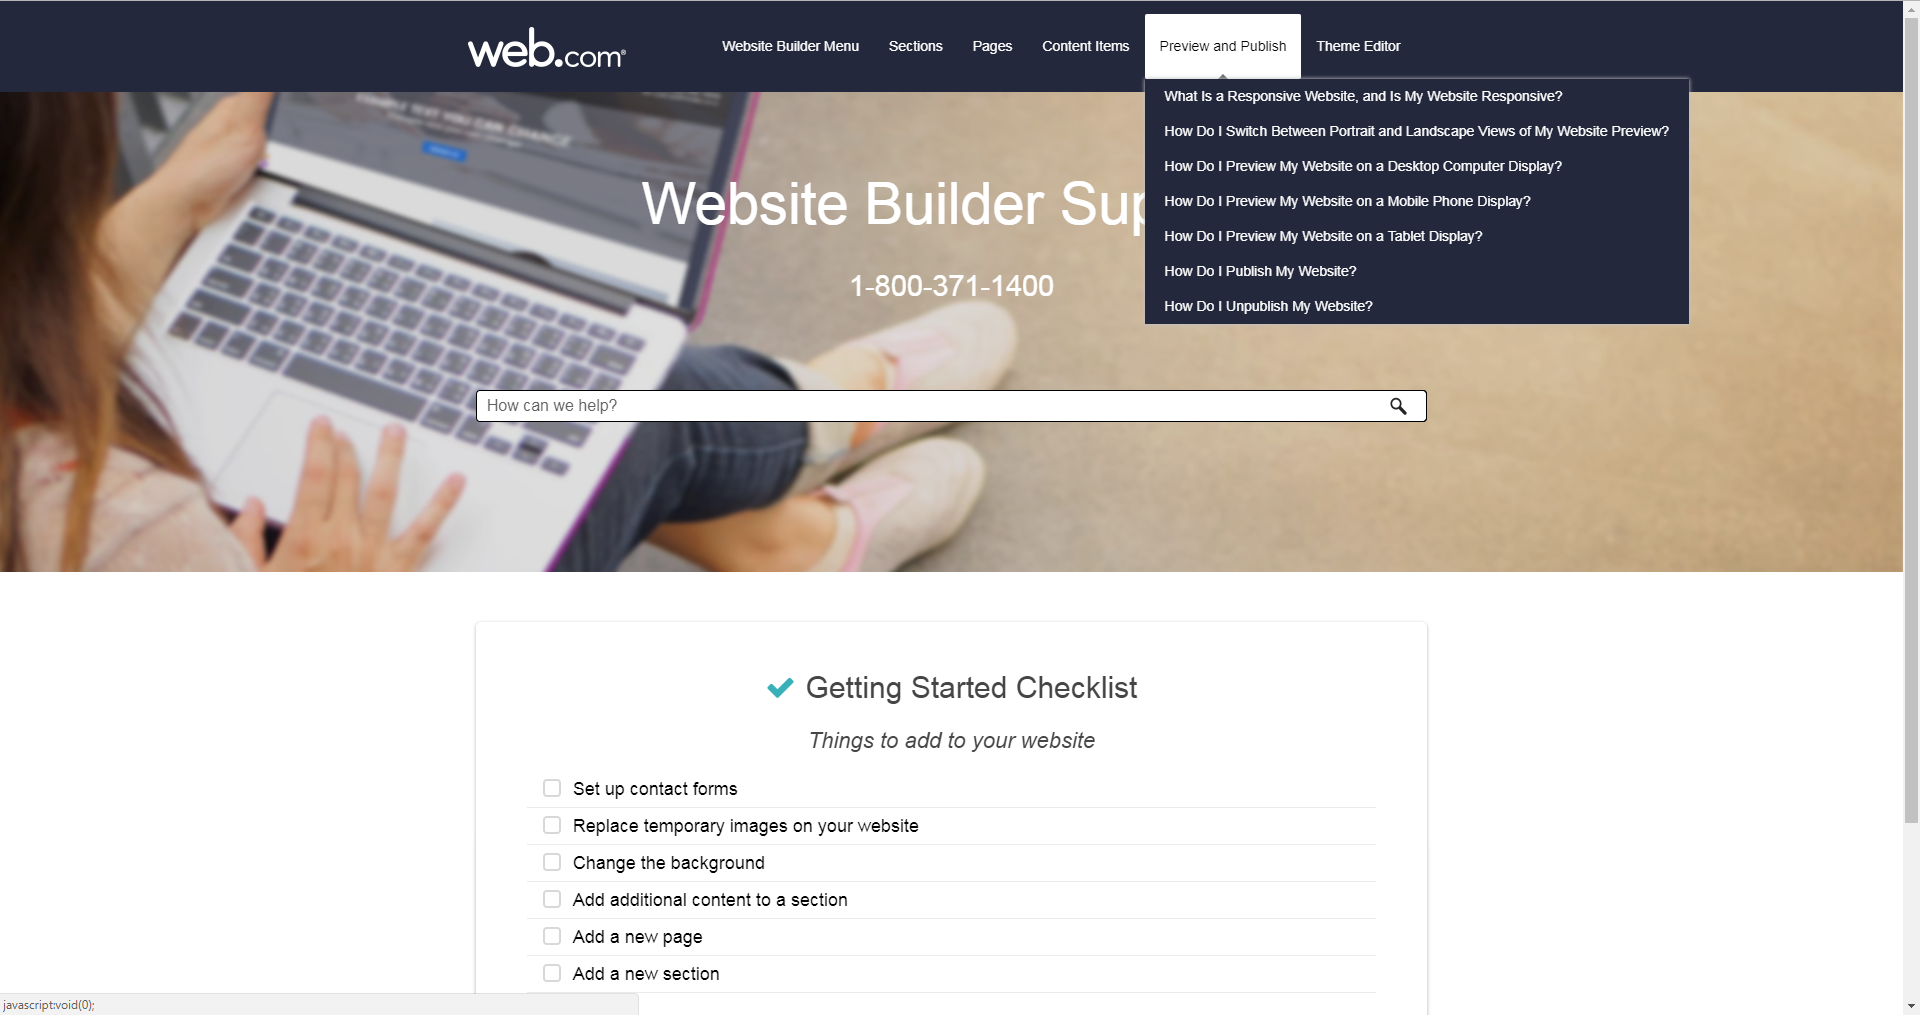 website builder support